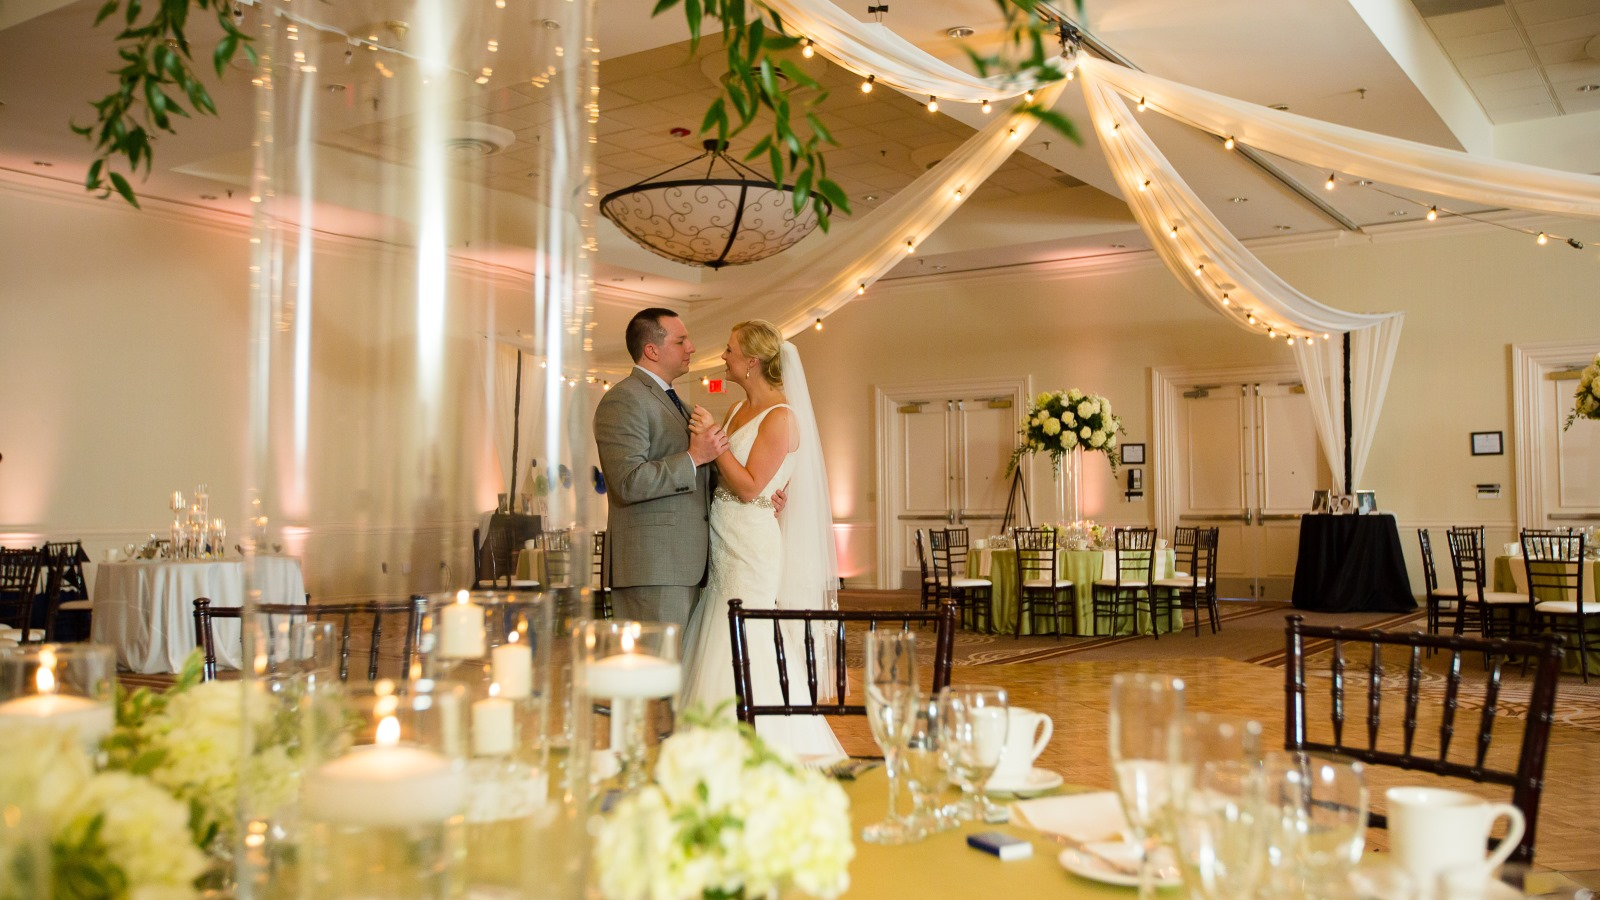 Raleigh Wedding Venues - Sheraton Raleigh Hotel Weddings